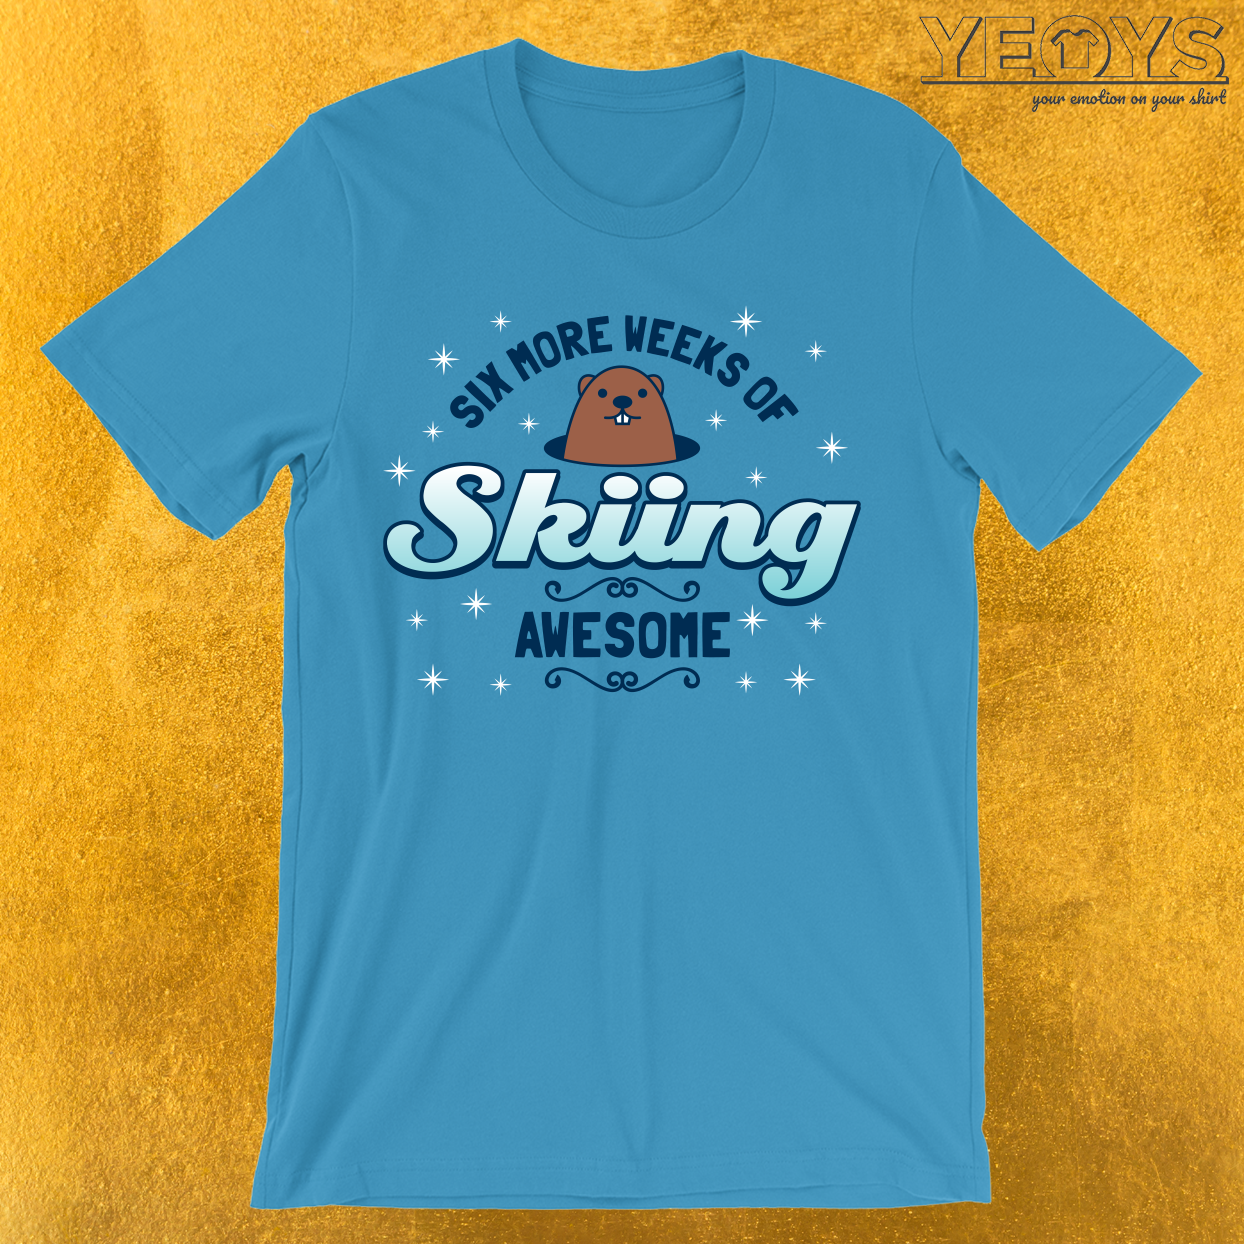 Six More Weeks Of Skiing T-Shirt